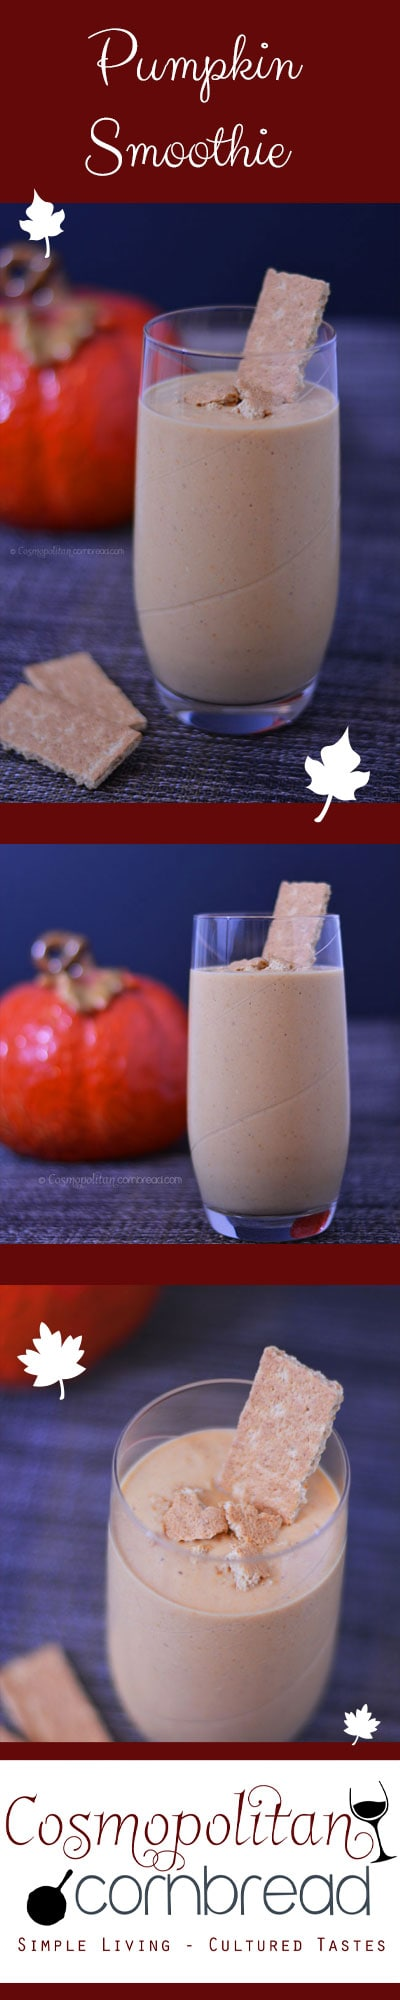 Pumpkin Smoothie from Cosmopolitan Cornbread